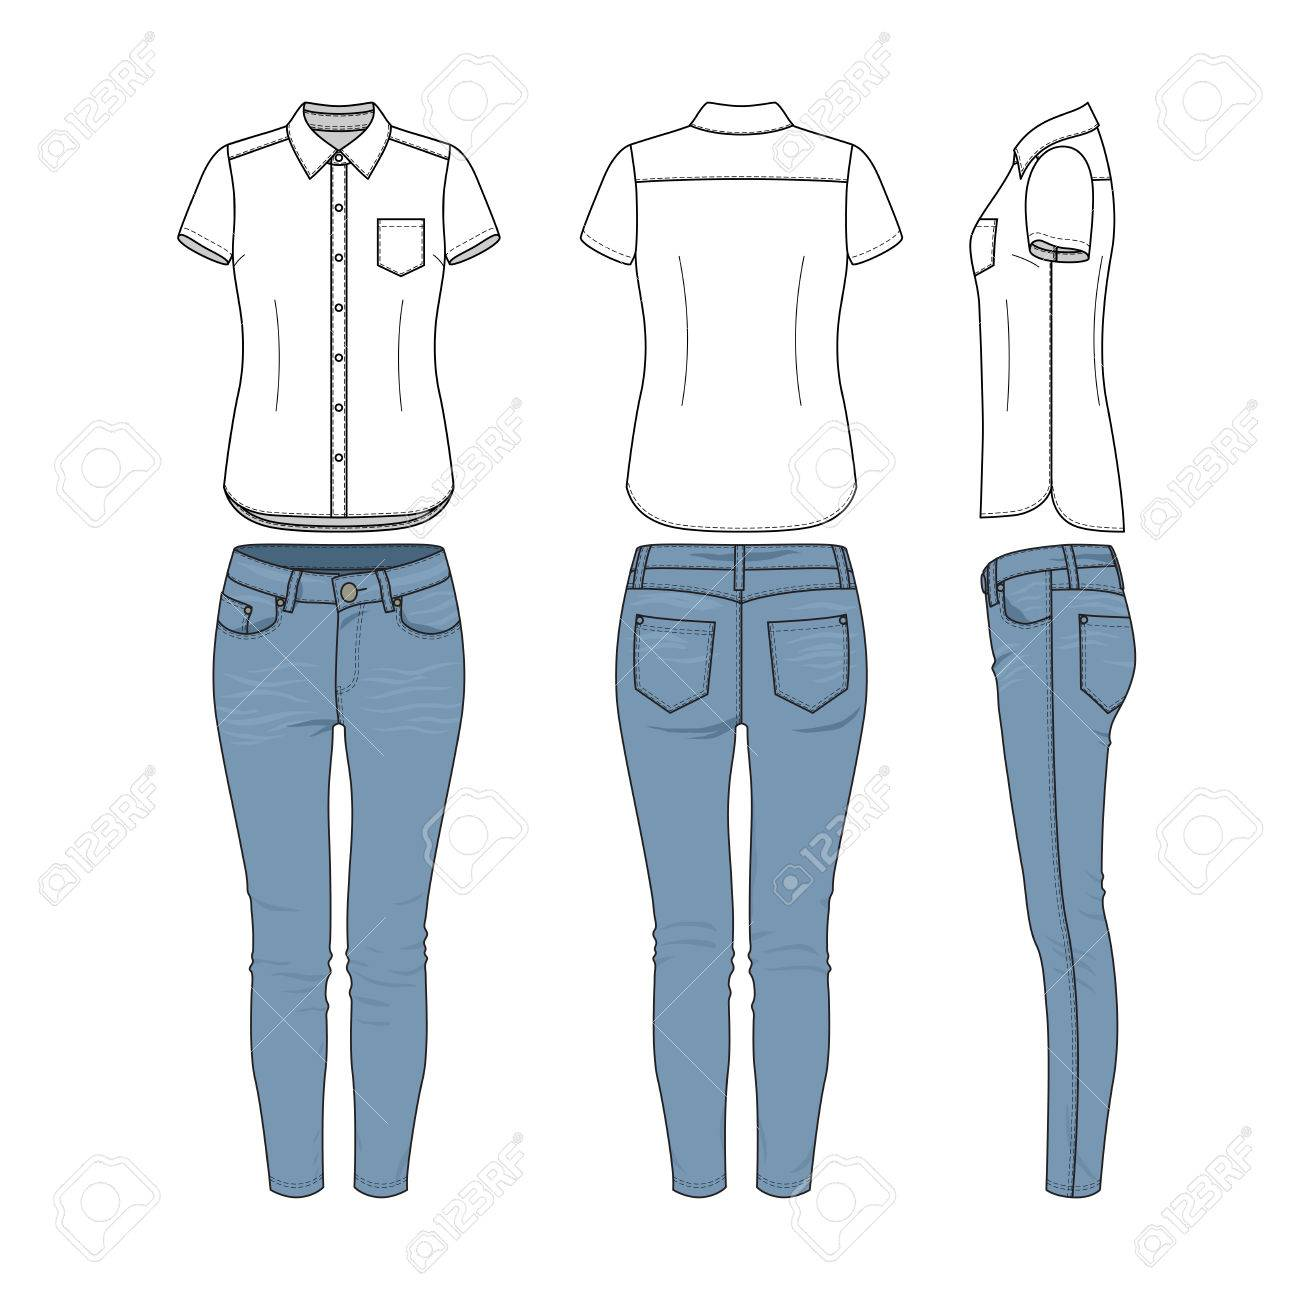 Female Clothing Set Of White Shirt And Blue Jeans Vector Templates Royalty Free Cliparts Vectors And Stock Illustration Image 76434614